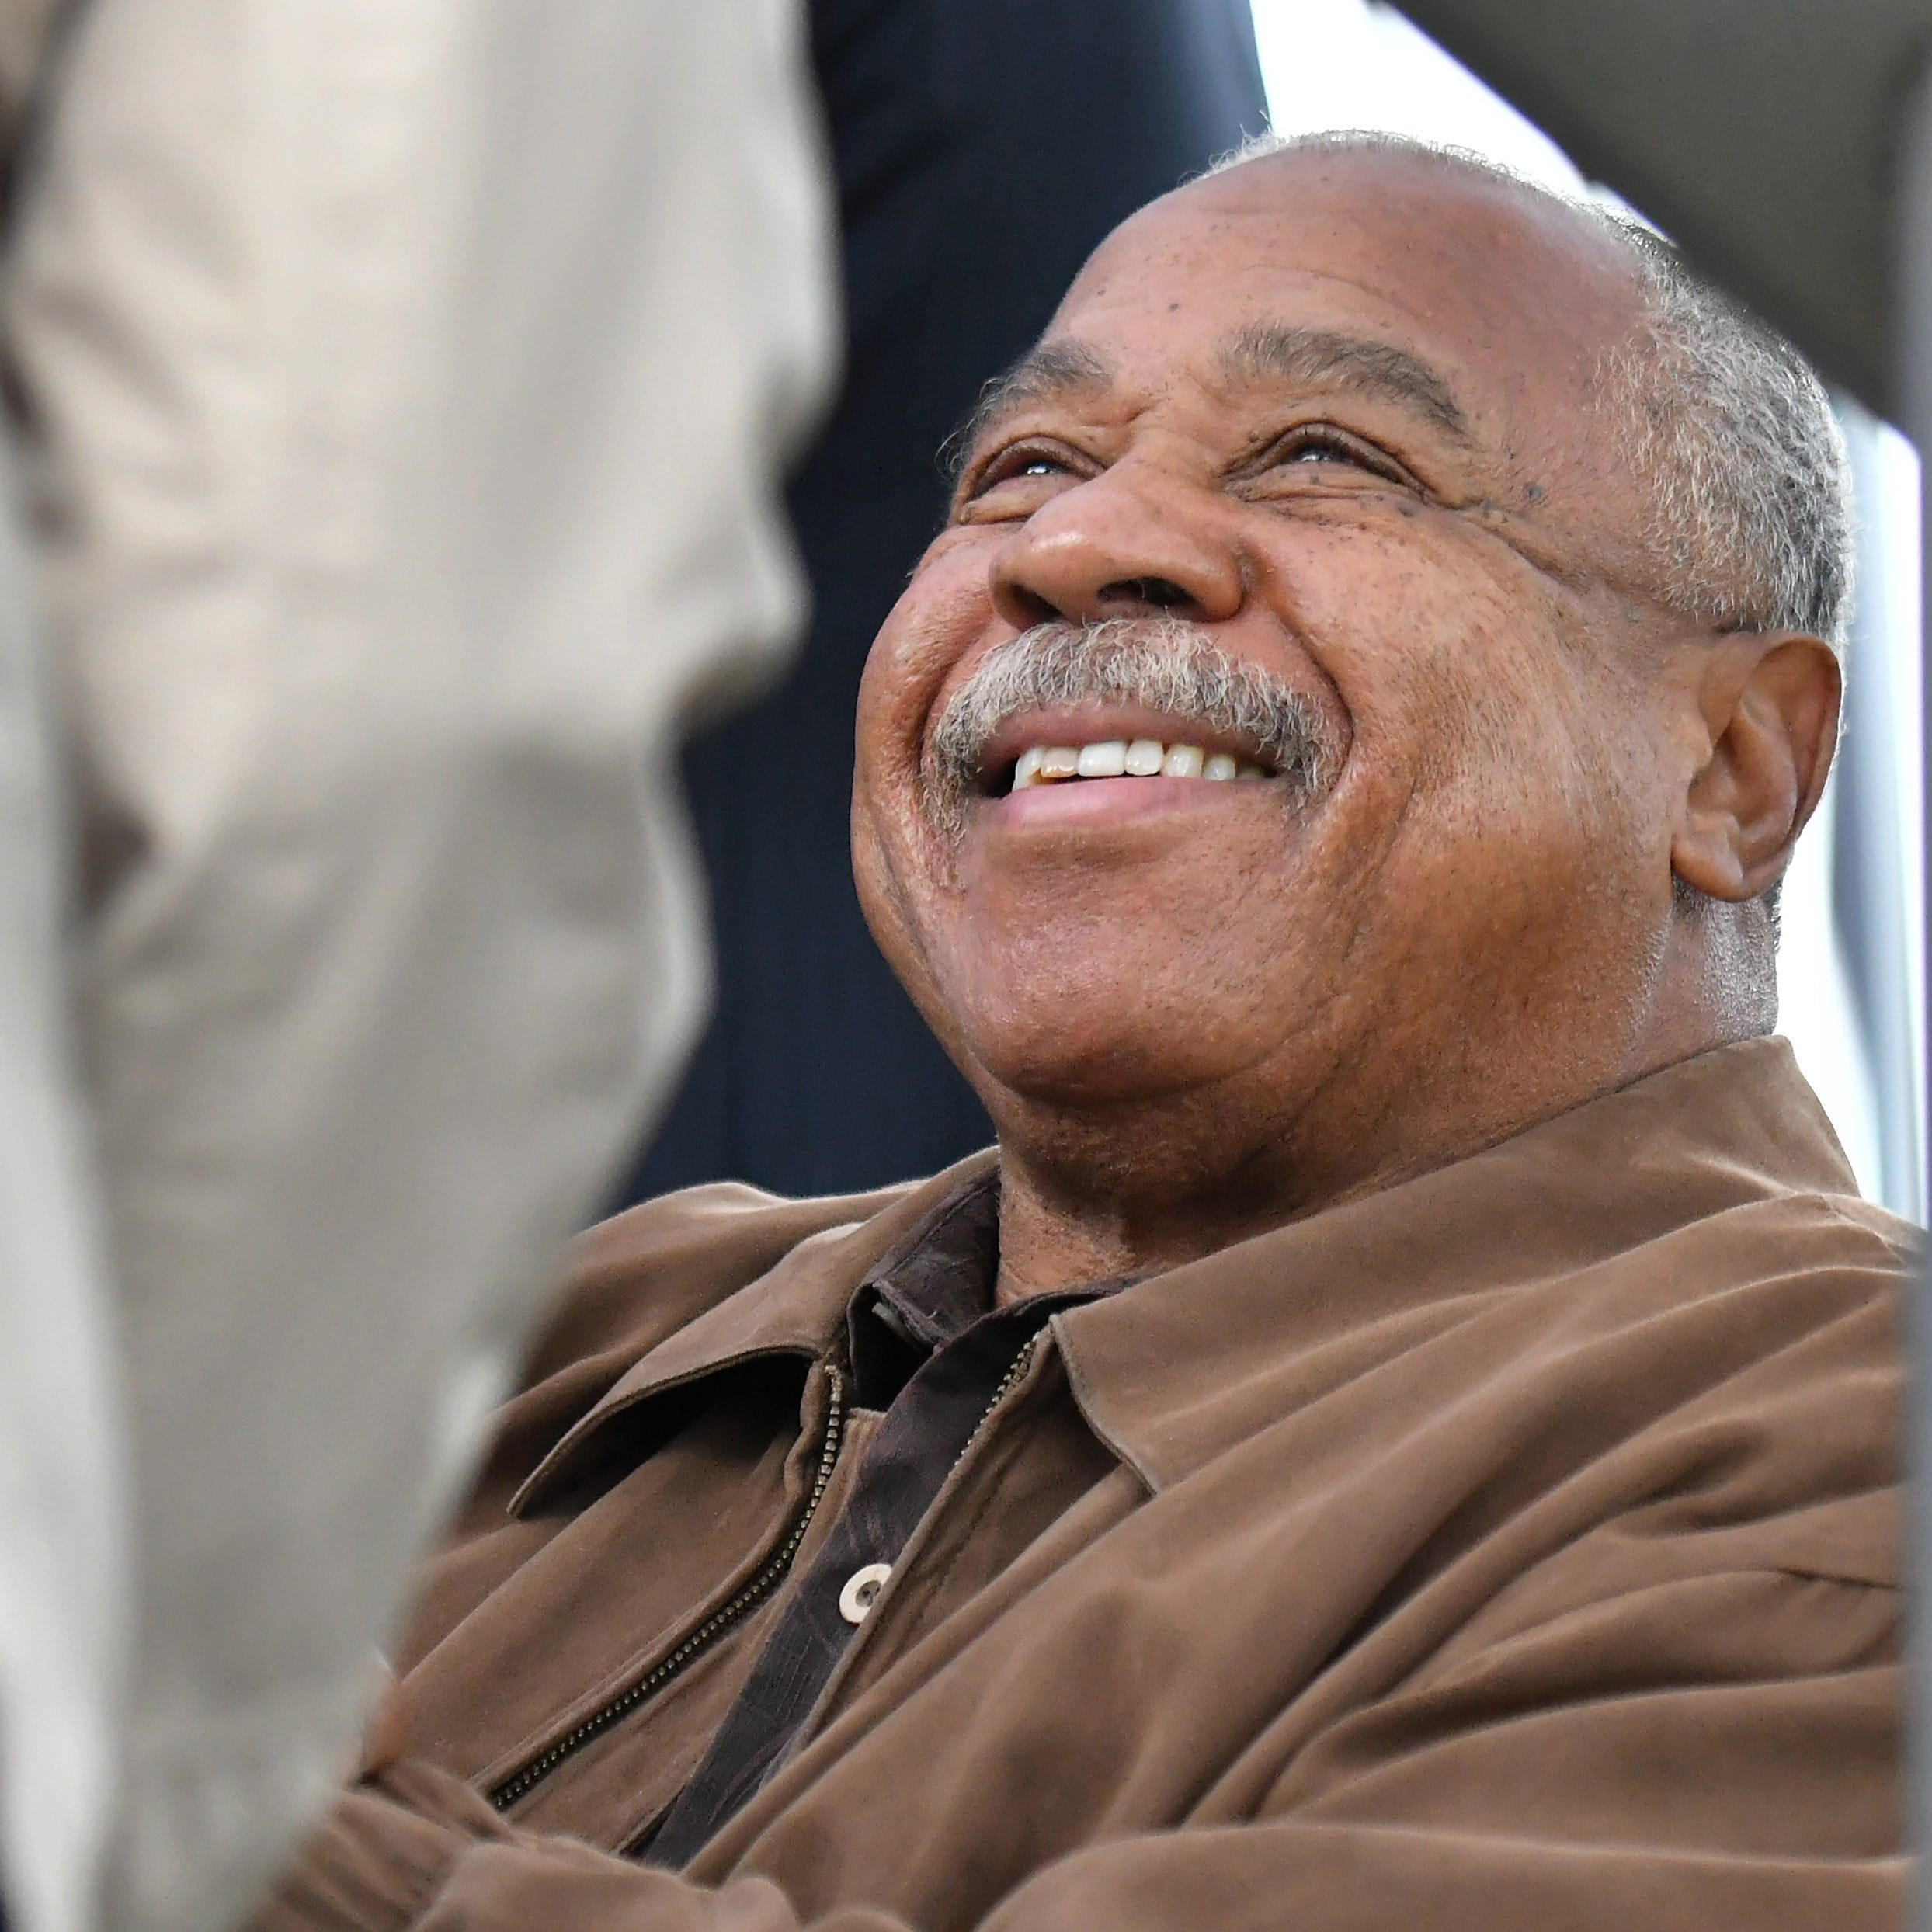 'This is home': Detroit names city street after Tigers legend Willie Horton